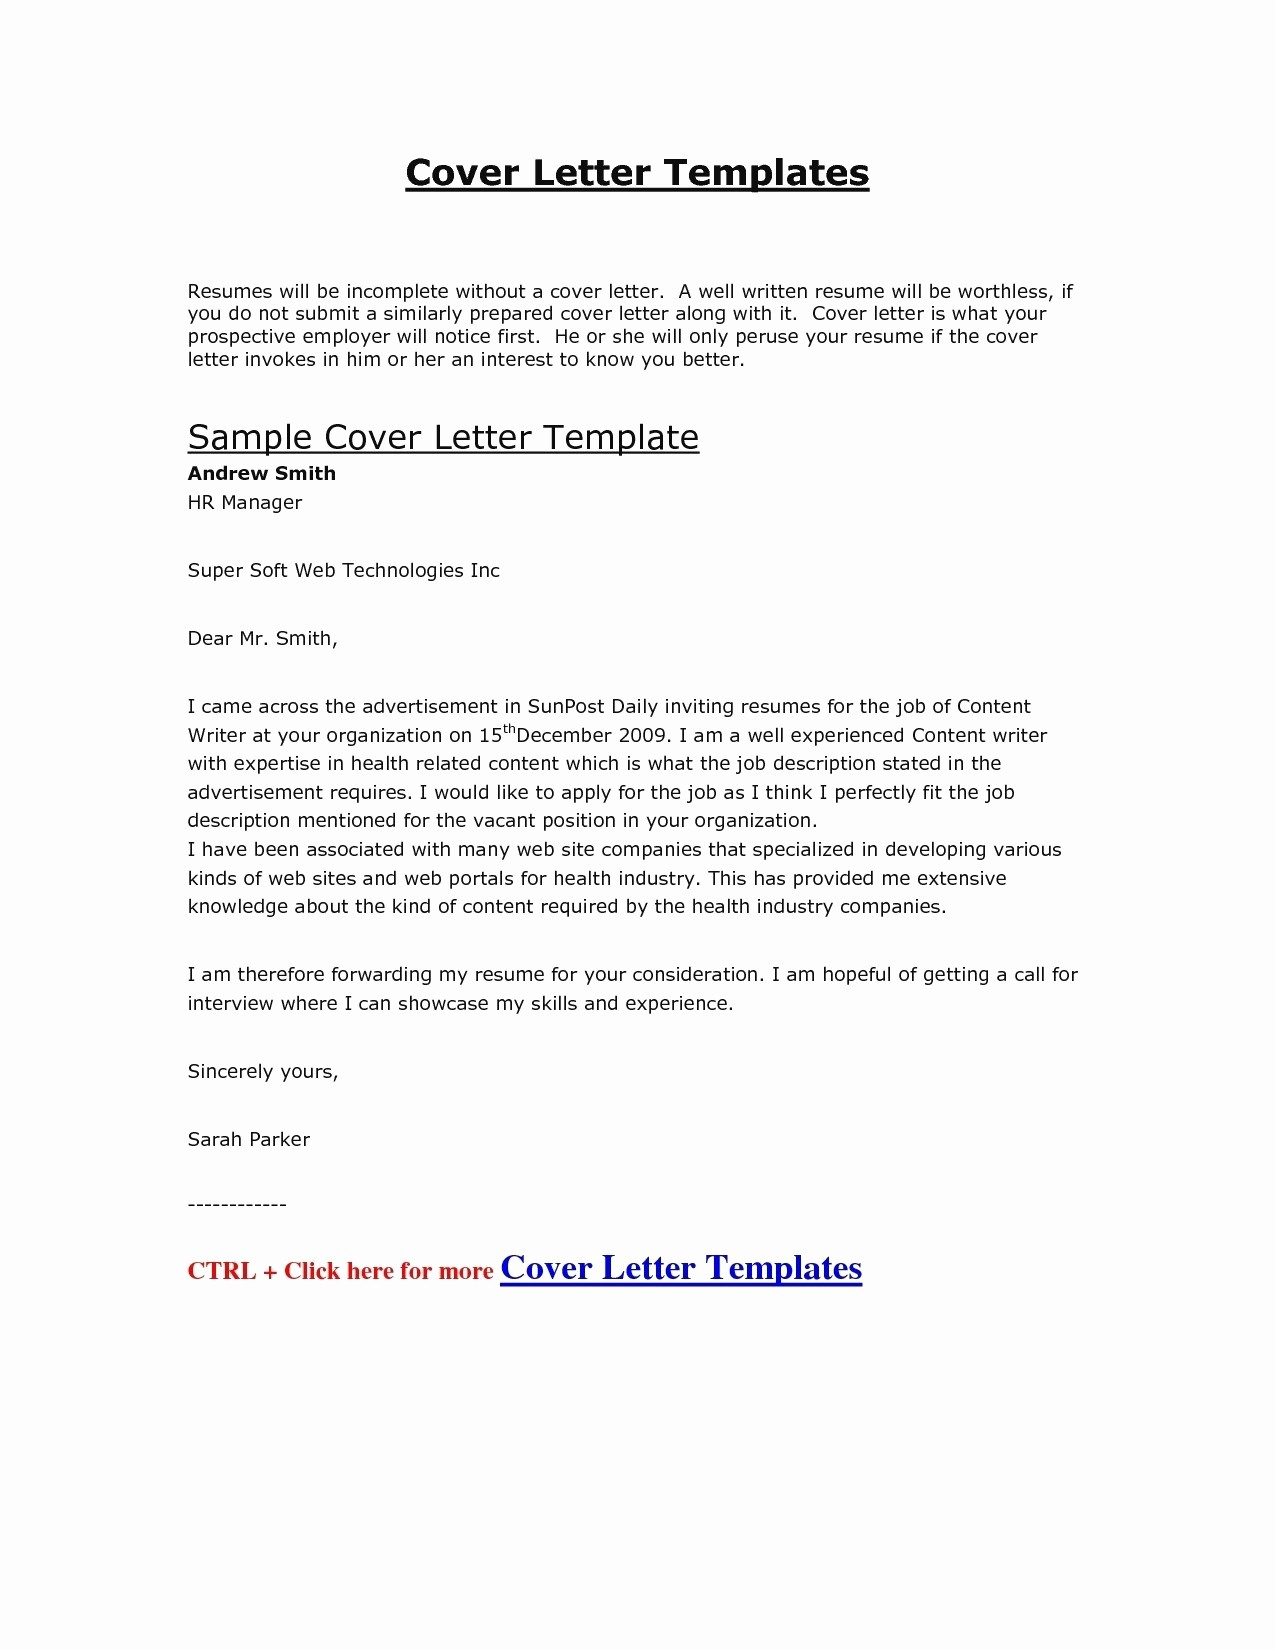 bad news letter template collection letter template collection